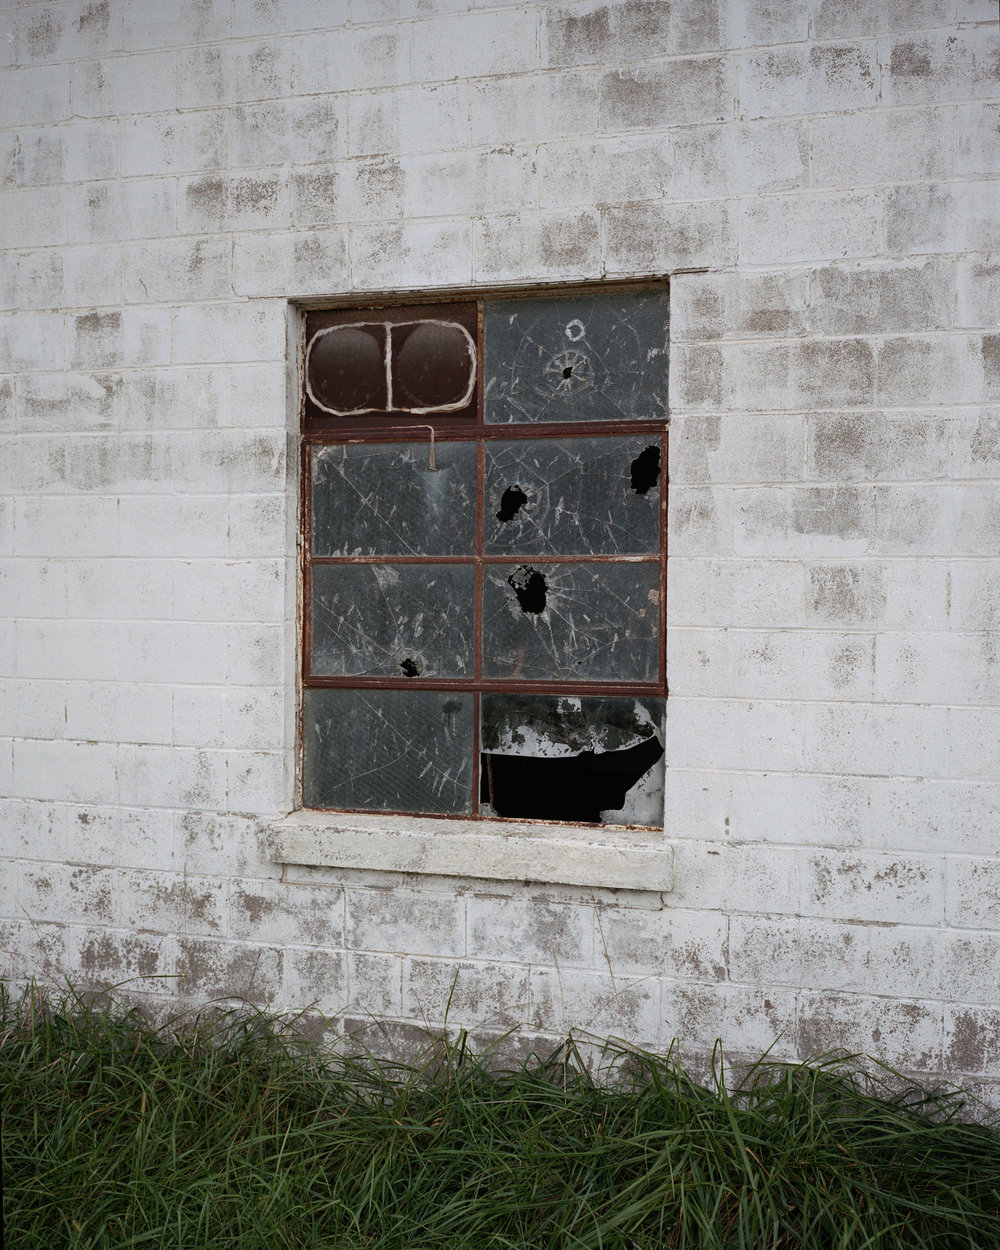 broken window004.jpg